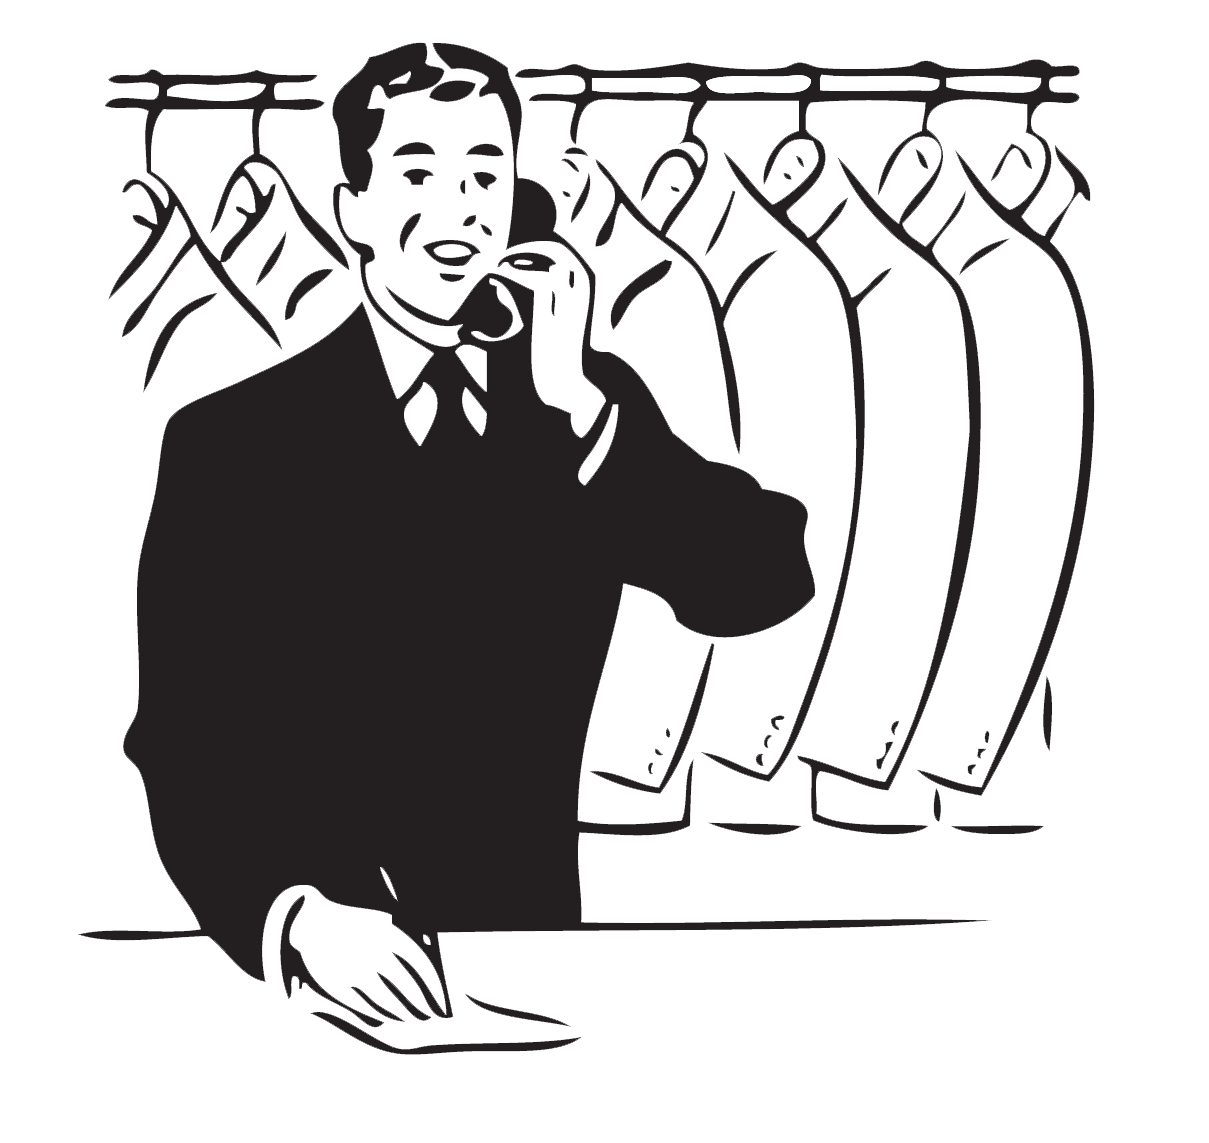 Agents for dry cleaning